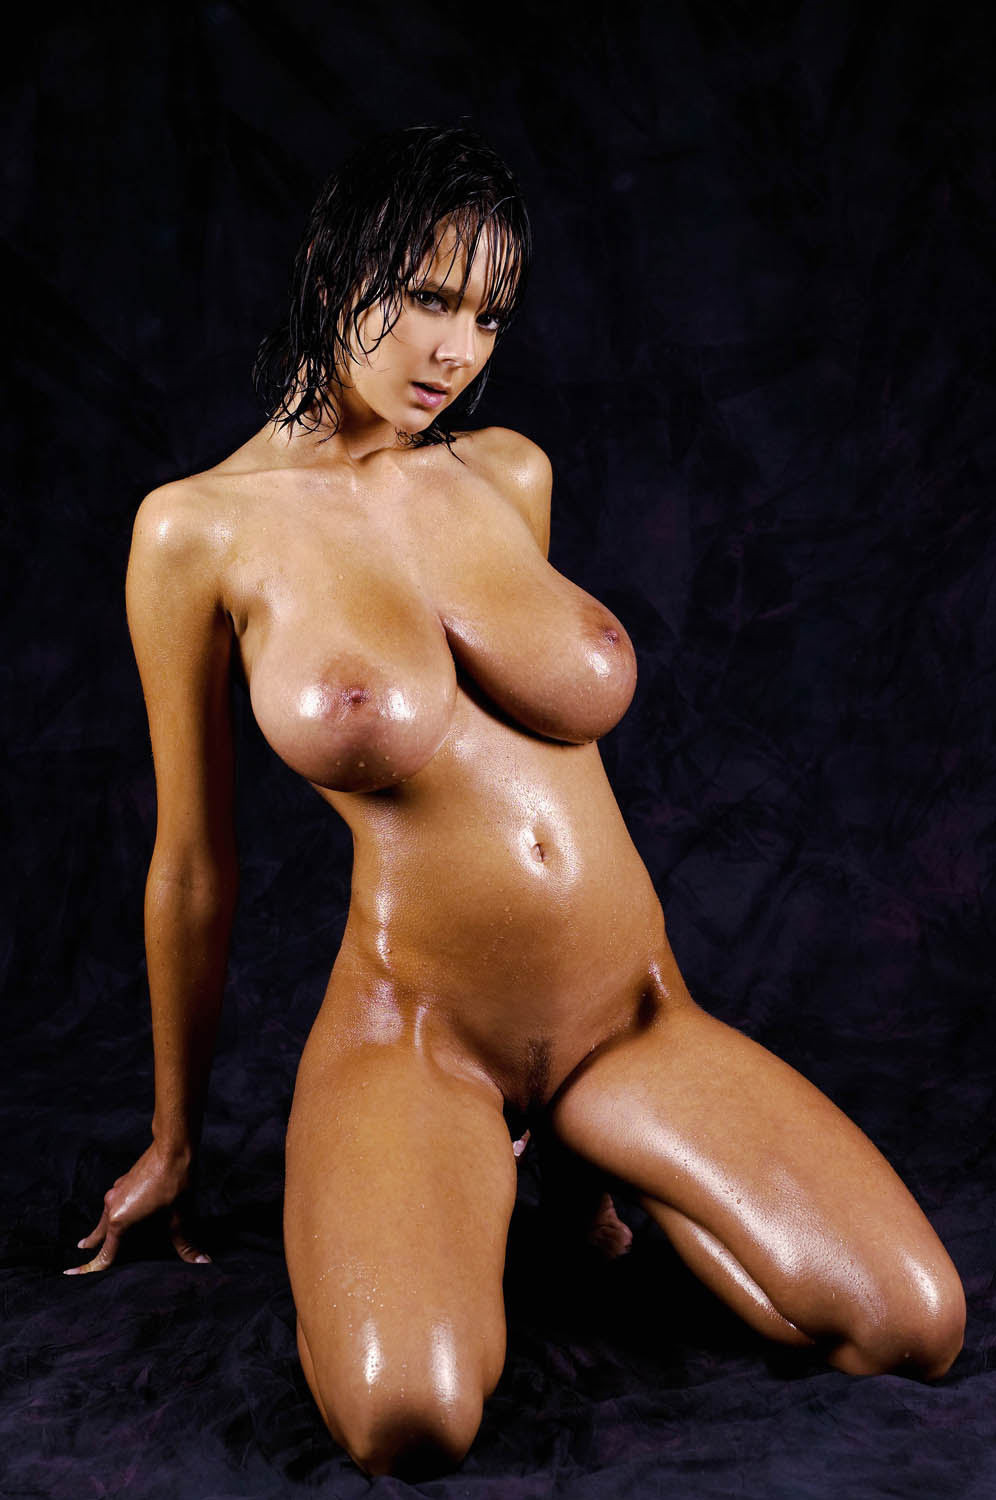 Oiled naked women sex boobs